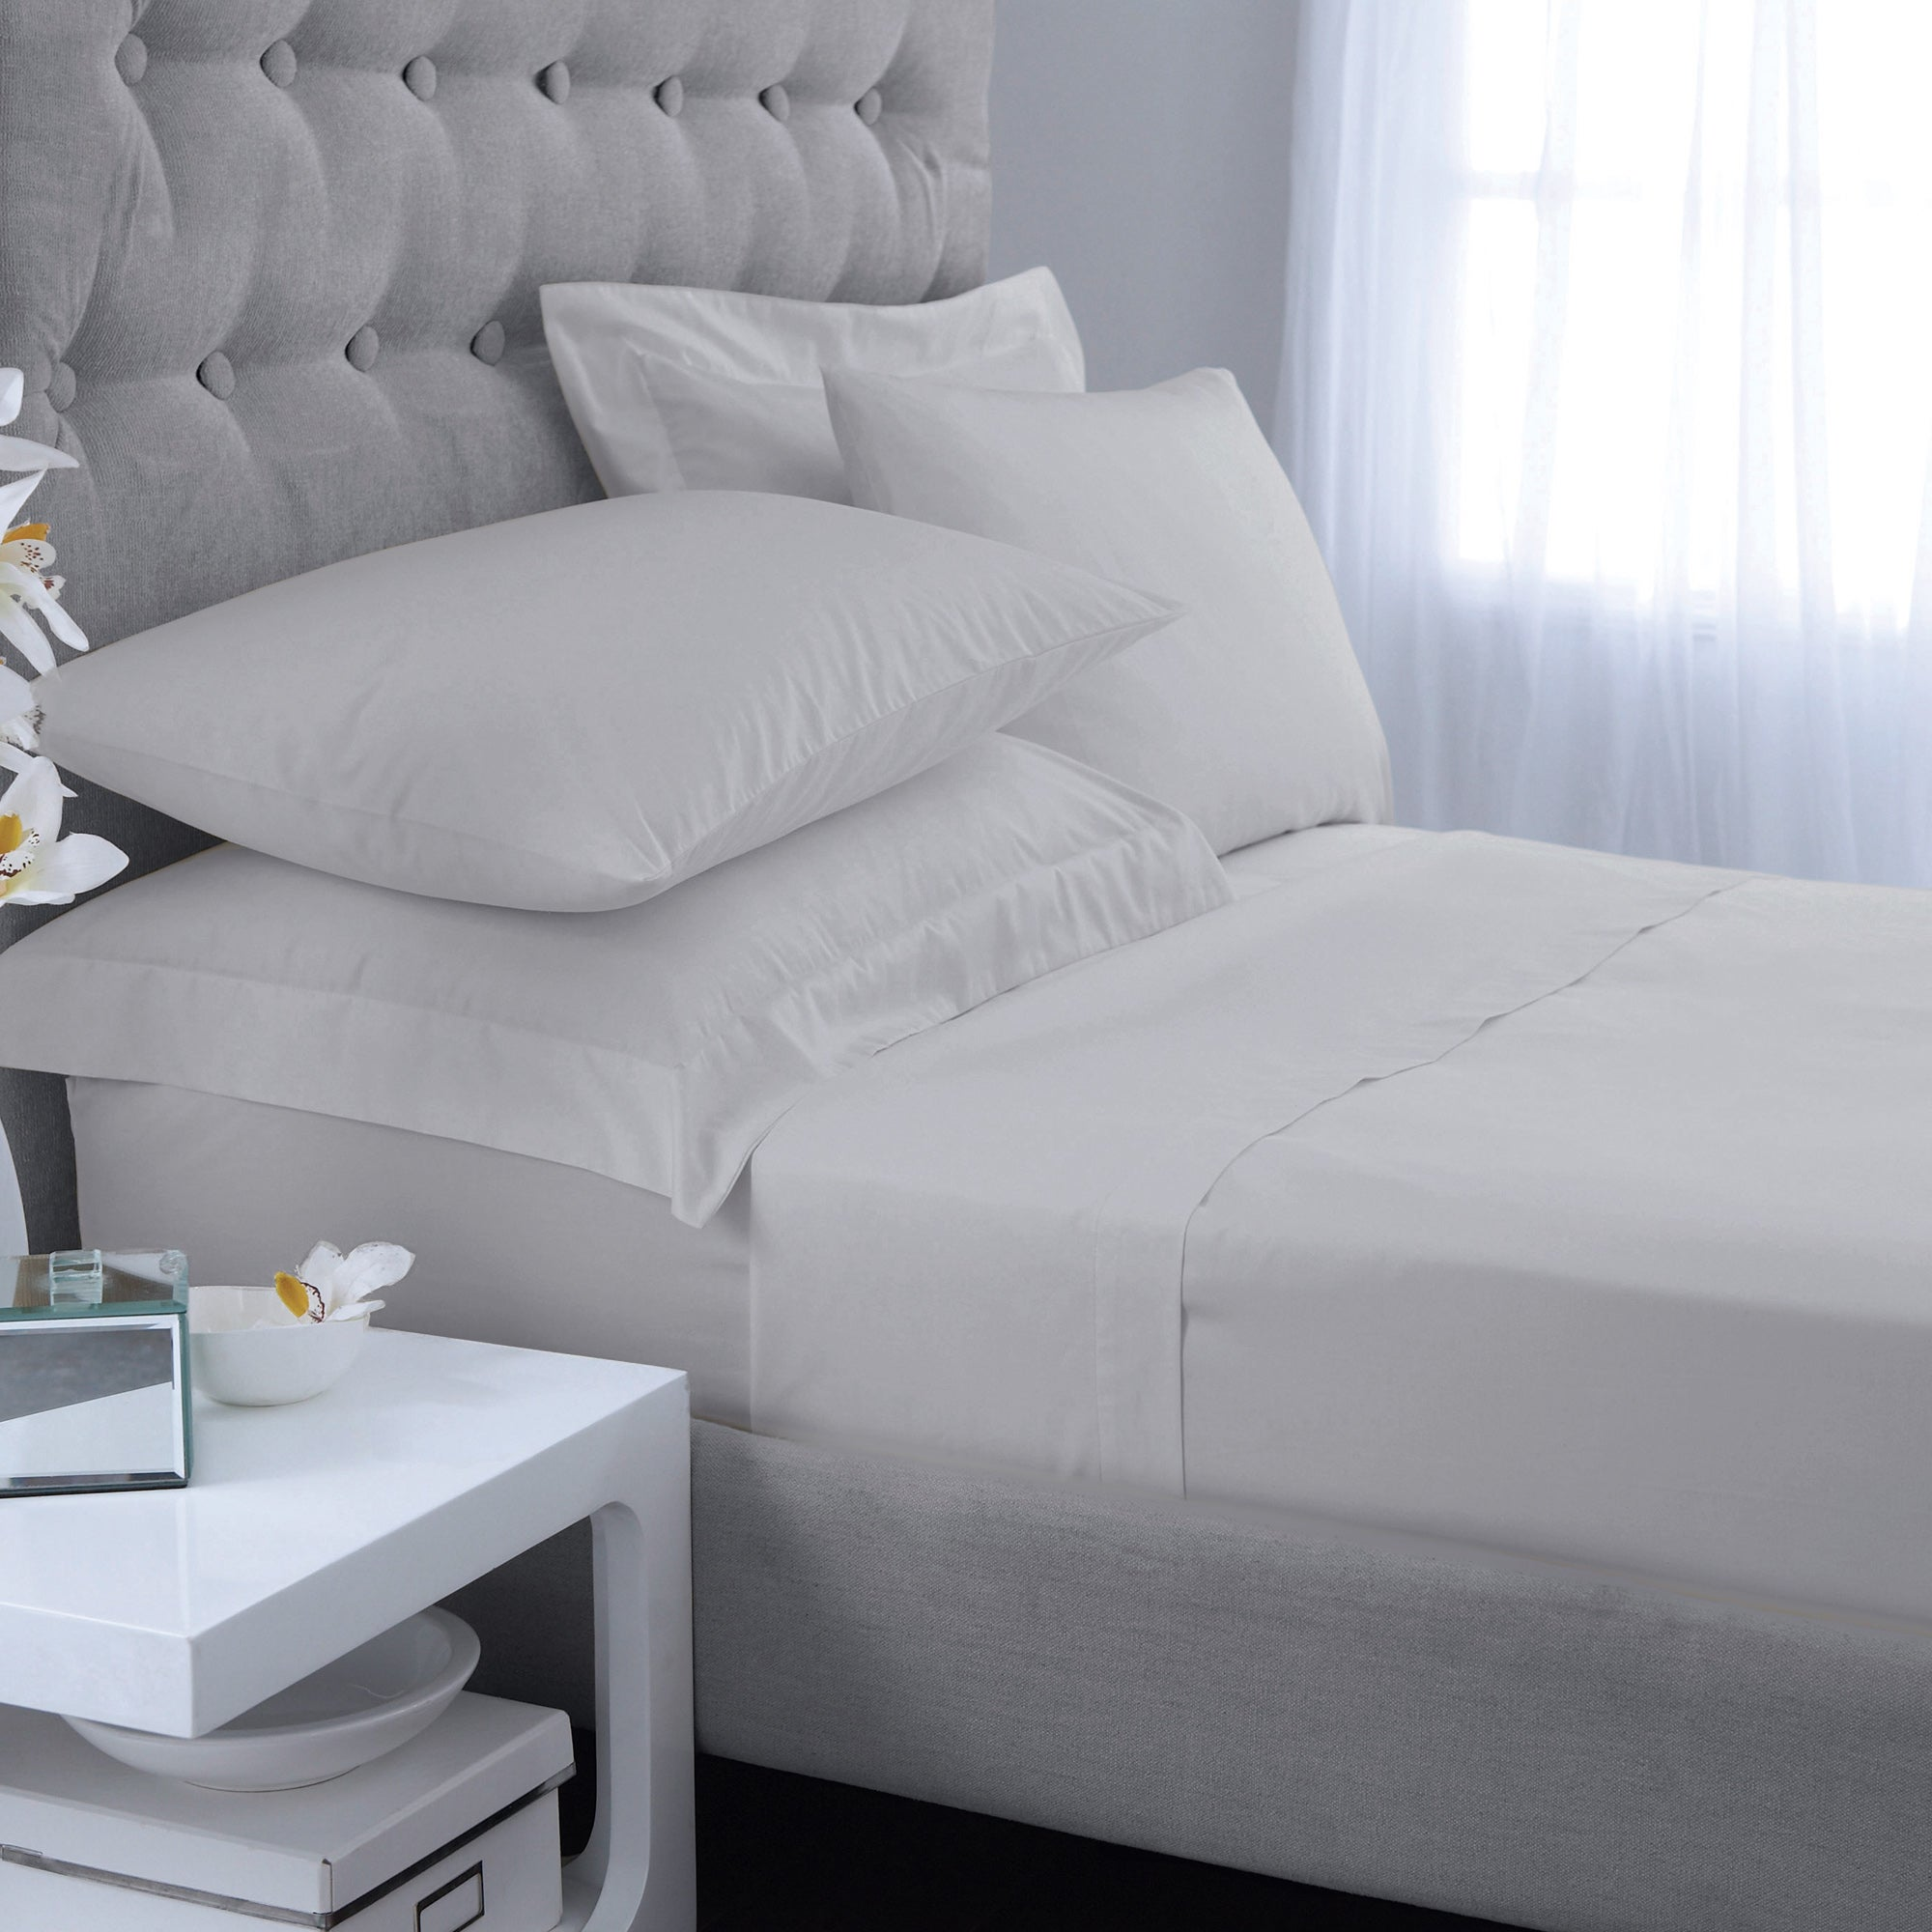 Image of Hotel 300 Thread Count Silver Duvet Cover Silver